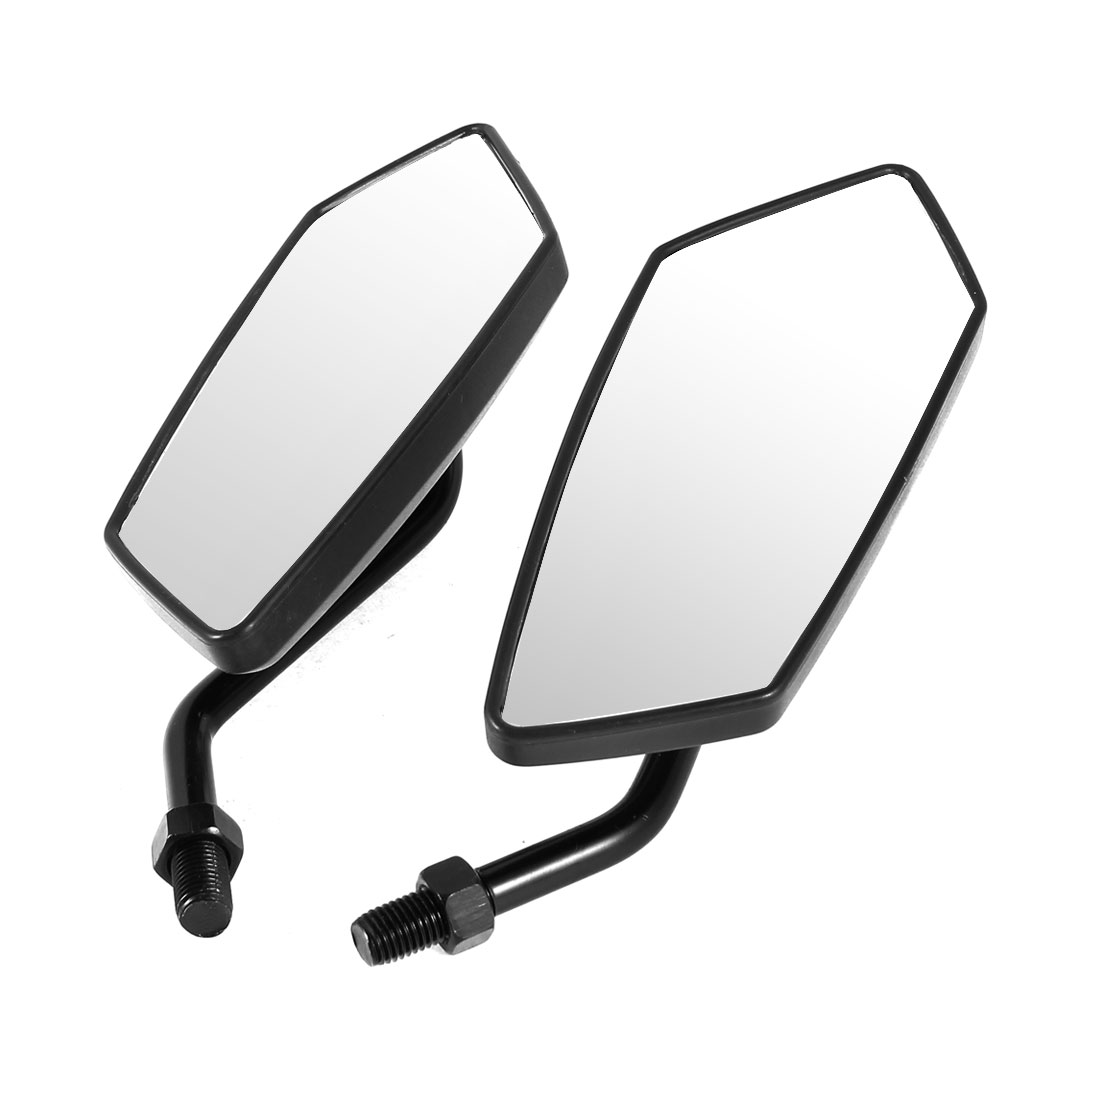 2 Pcs Black Blue Gecko Prints Rearview Mirrors for Motorcycle Motorbike Scooter